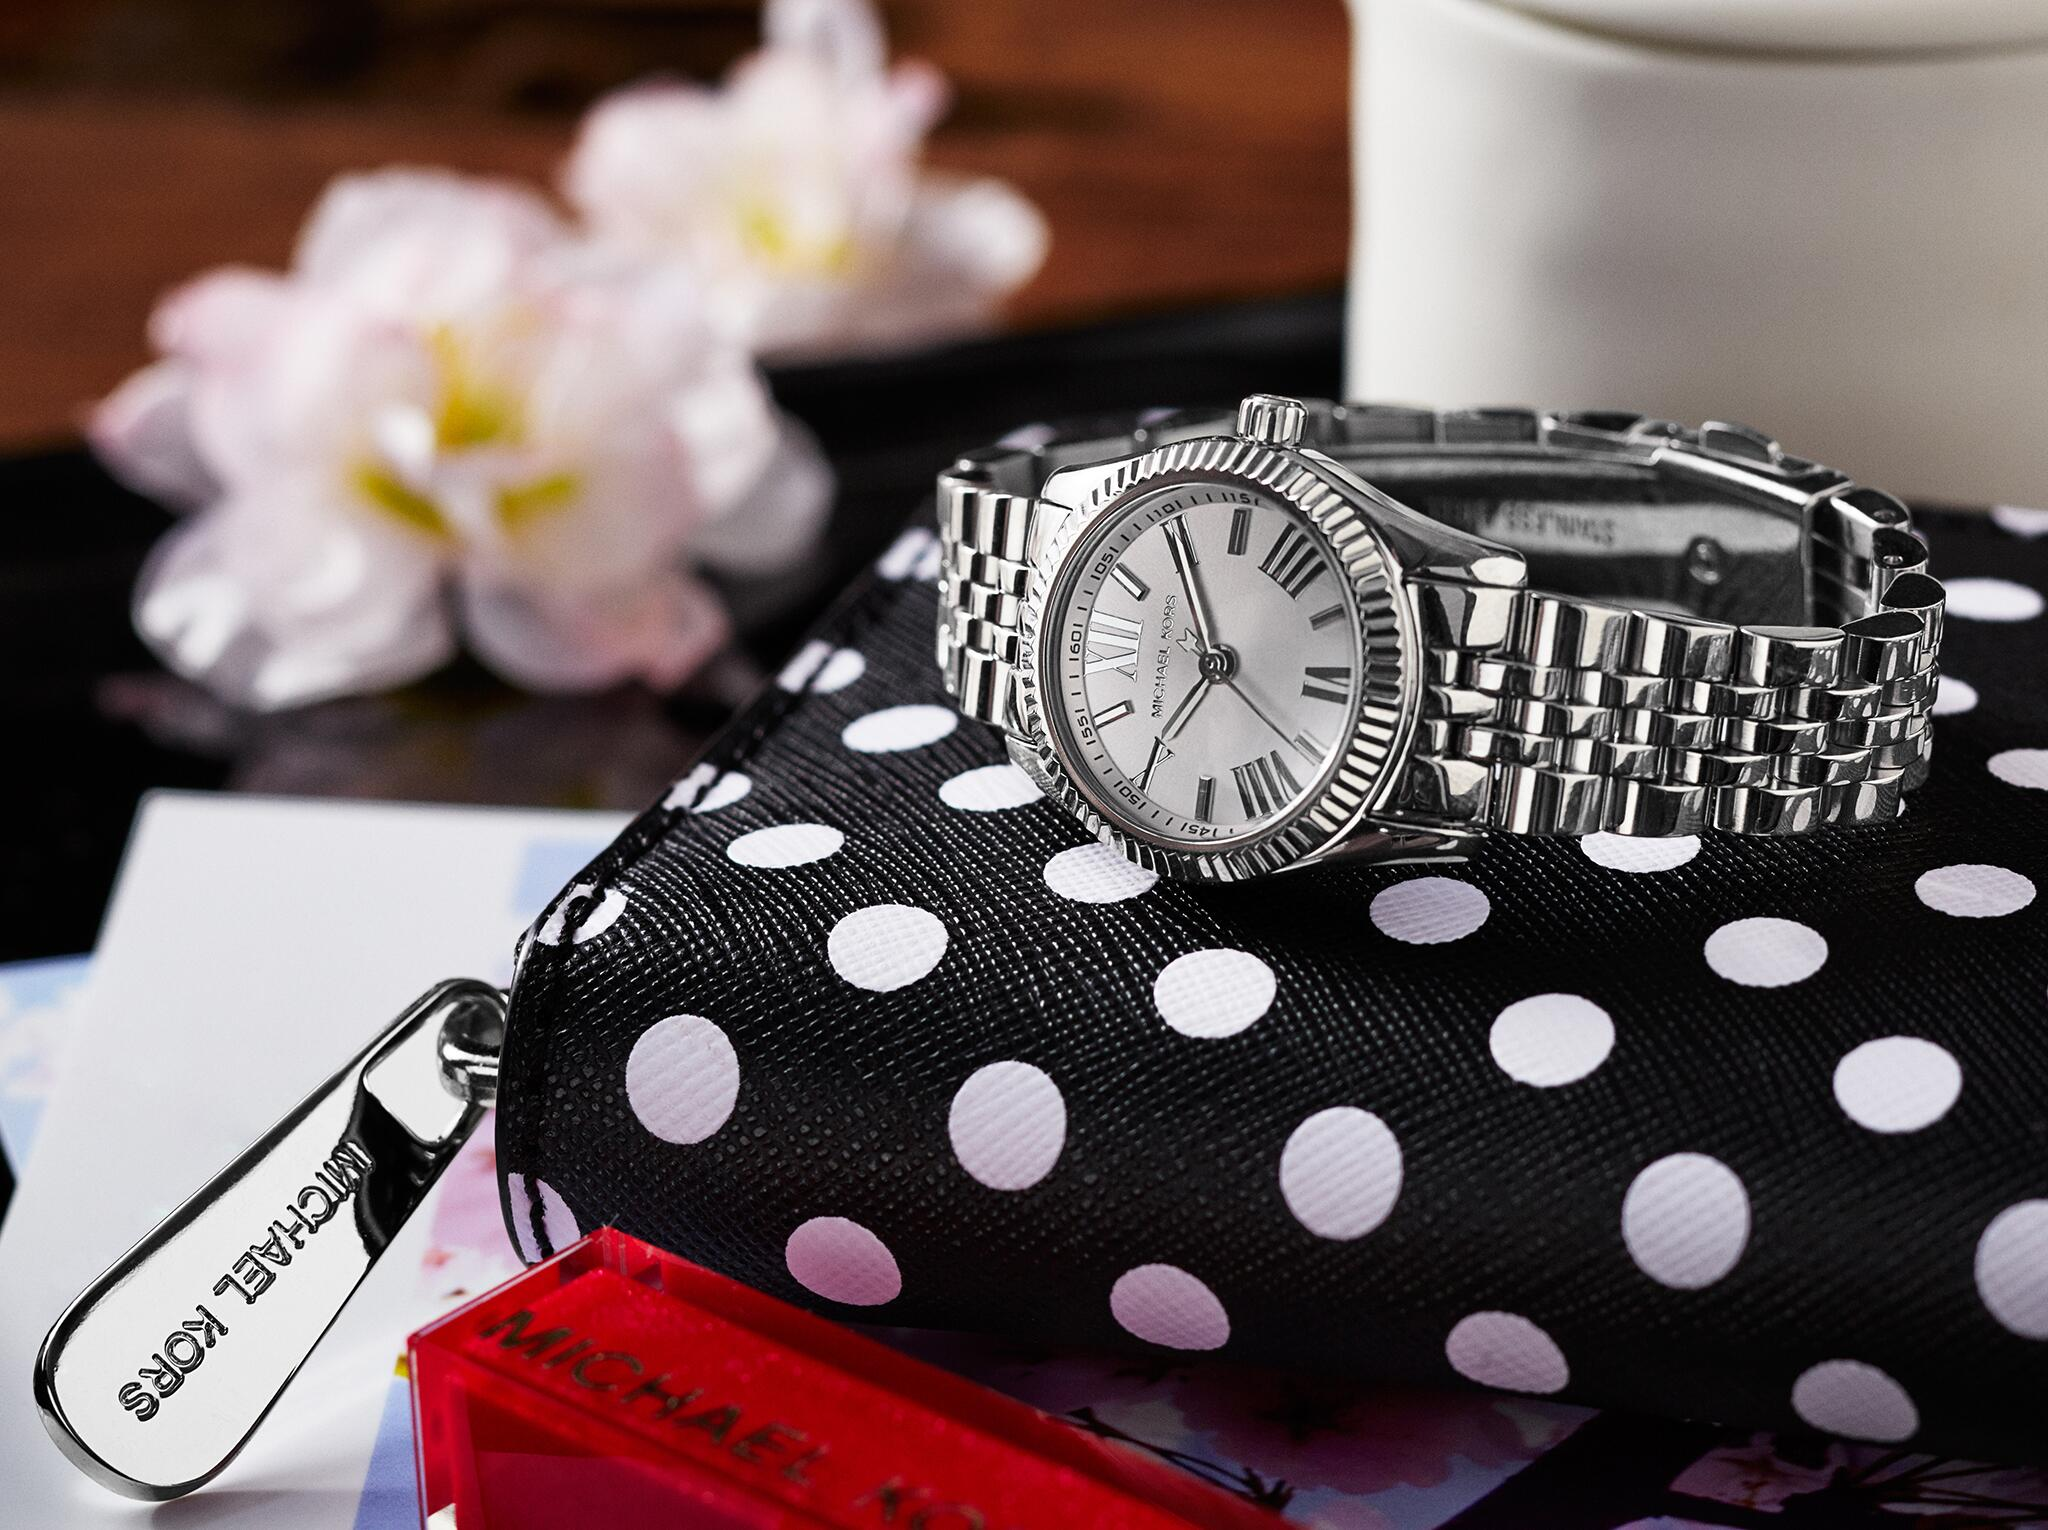 A spot on watch http://t.co/NJgUPZ8iN7 #WhatsInYourKors http://t.co/XeK1zGnc6p